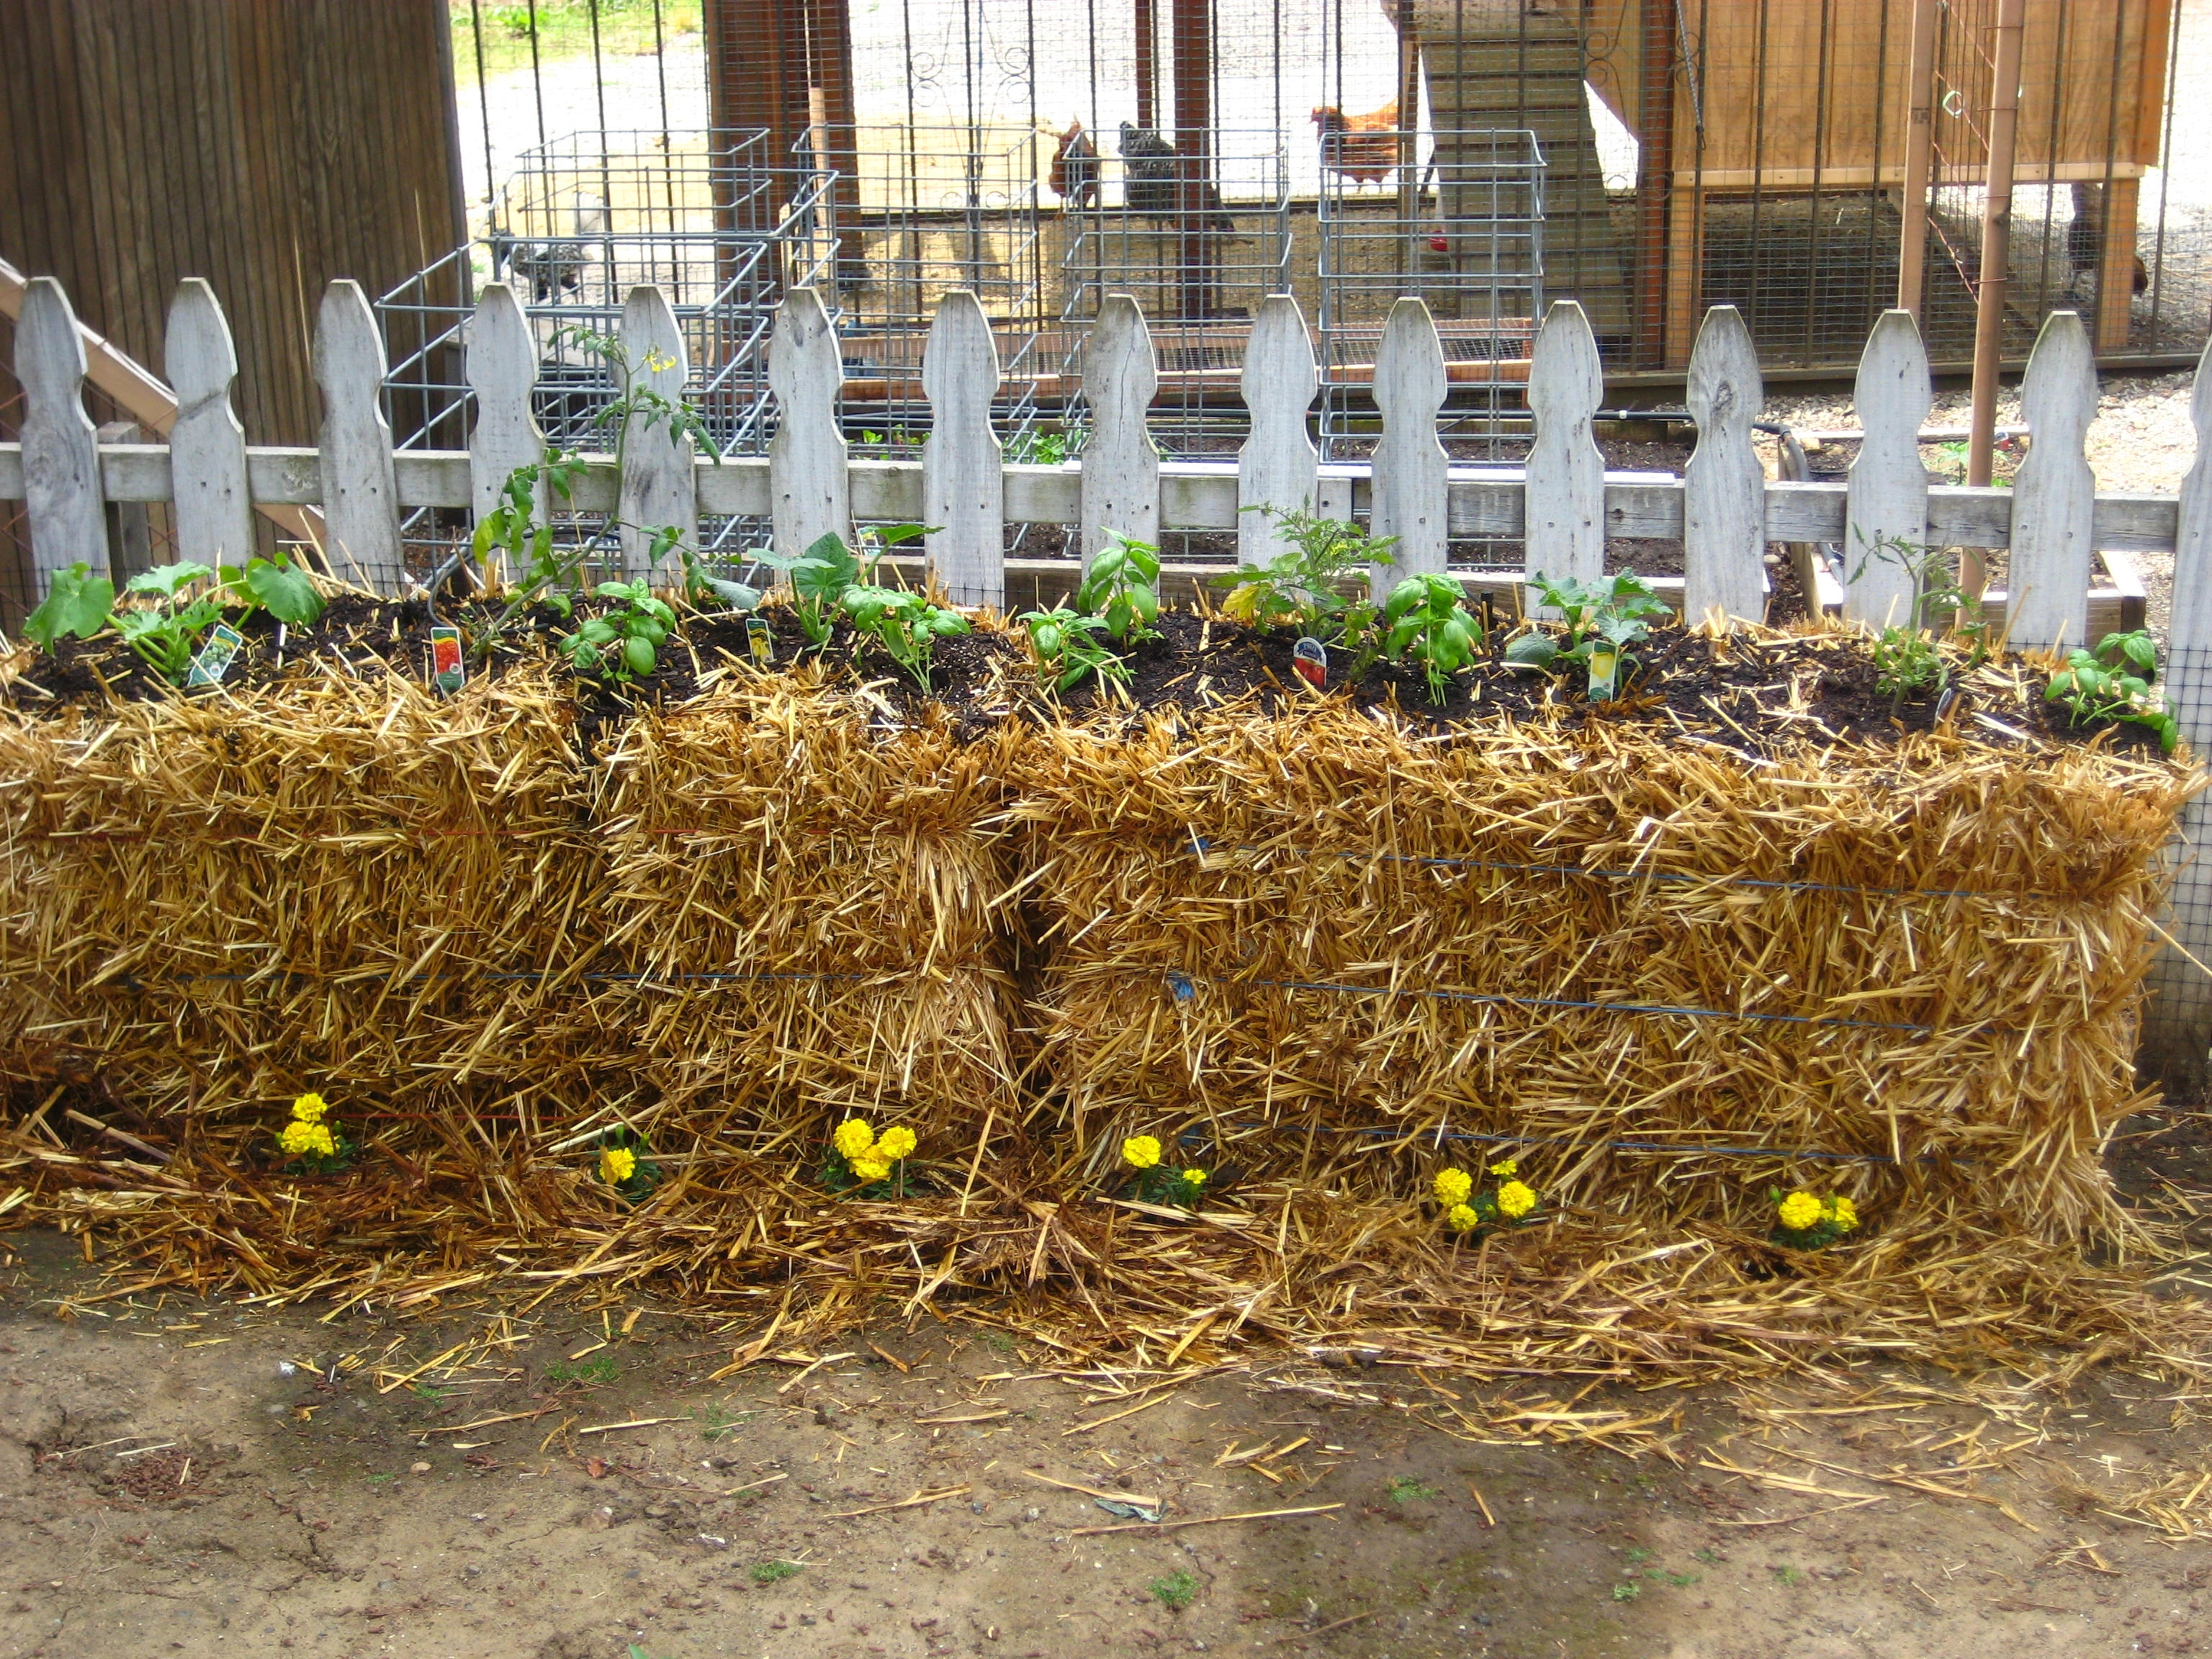 growing plants in hay bales Place bales with stems upright and vertical, so cords don't touch the ...